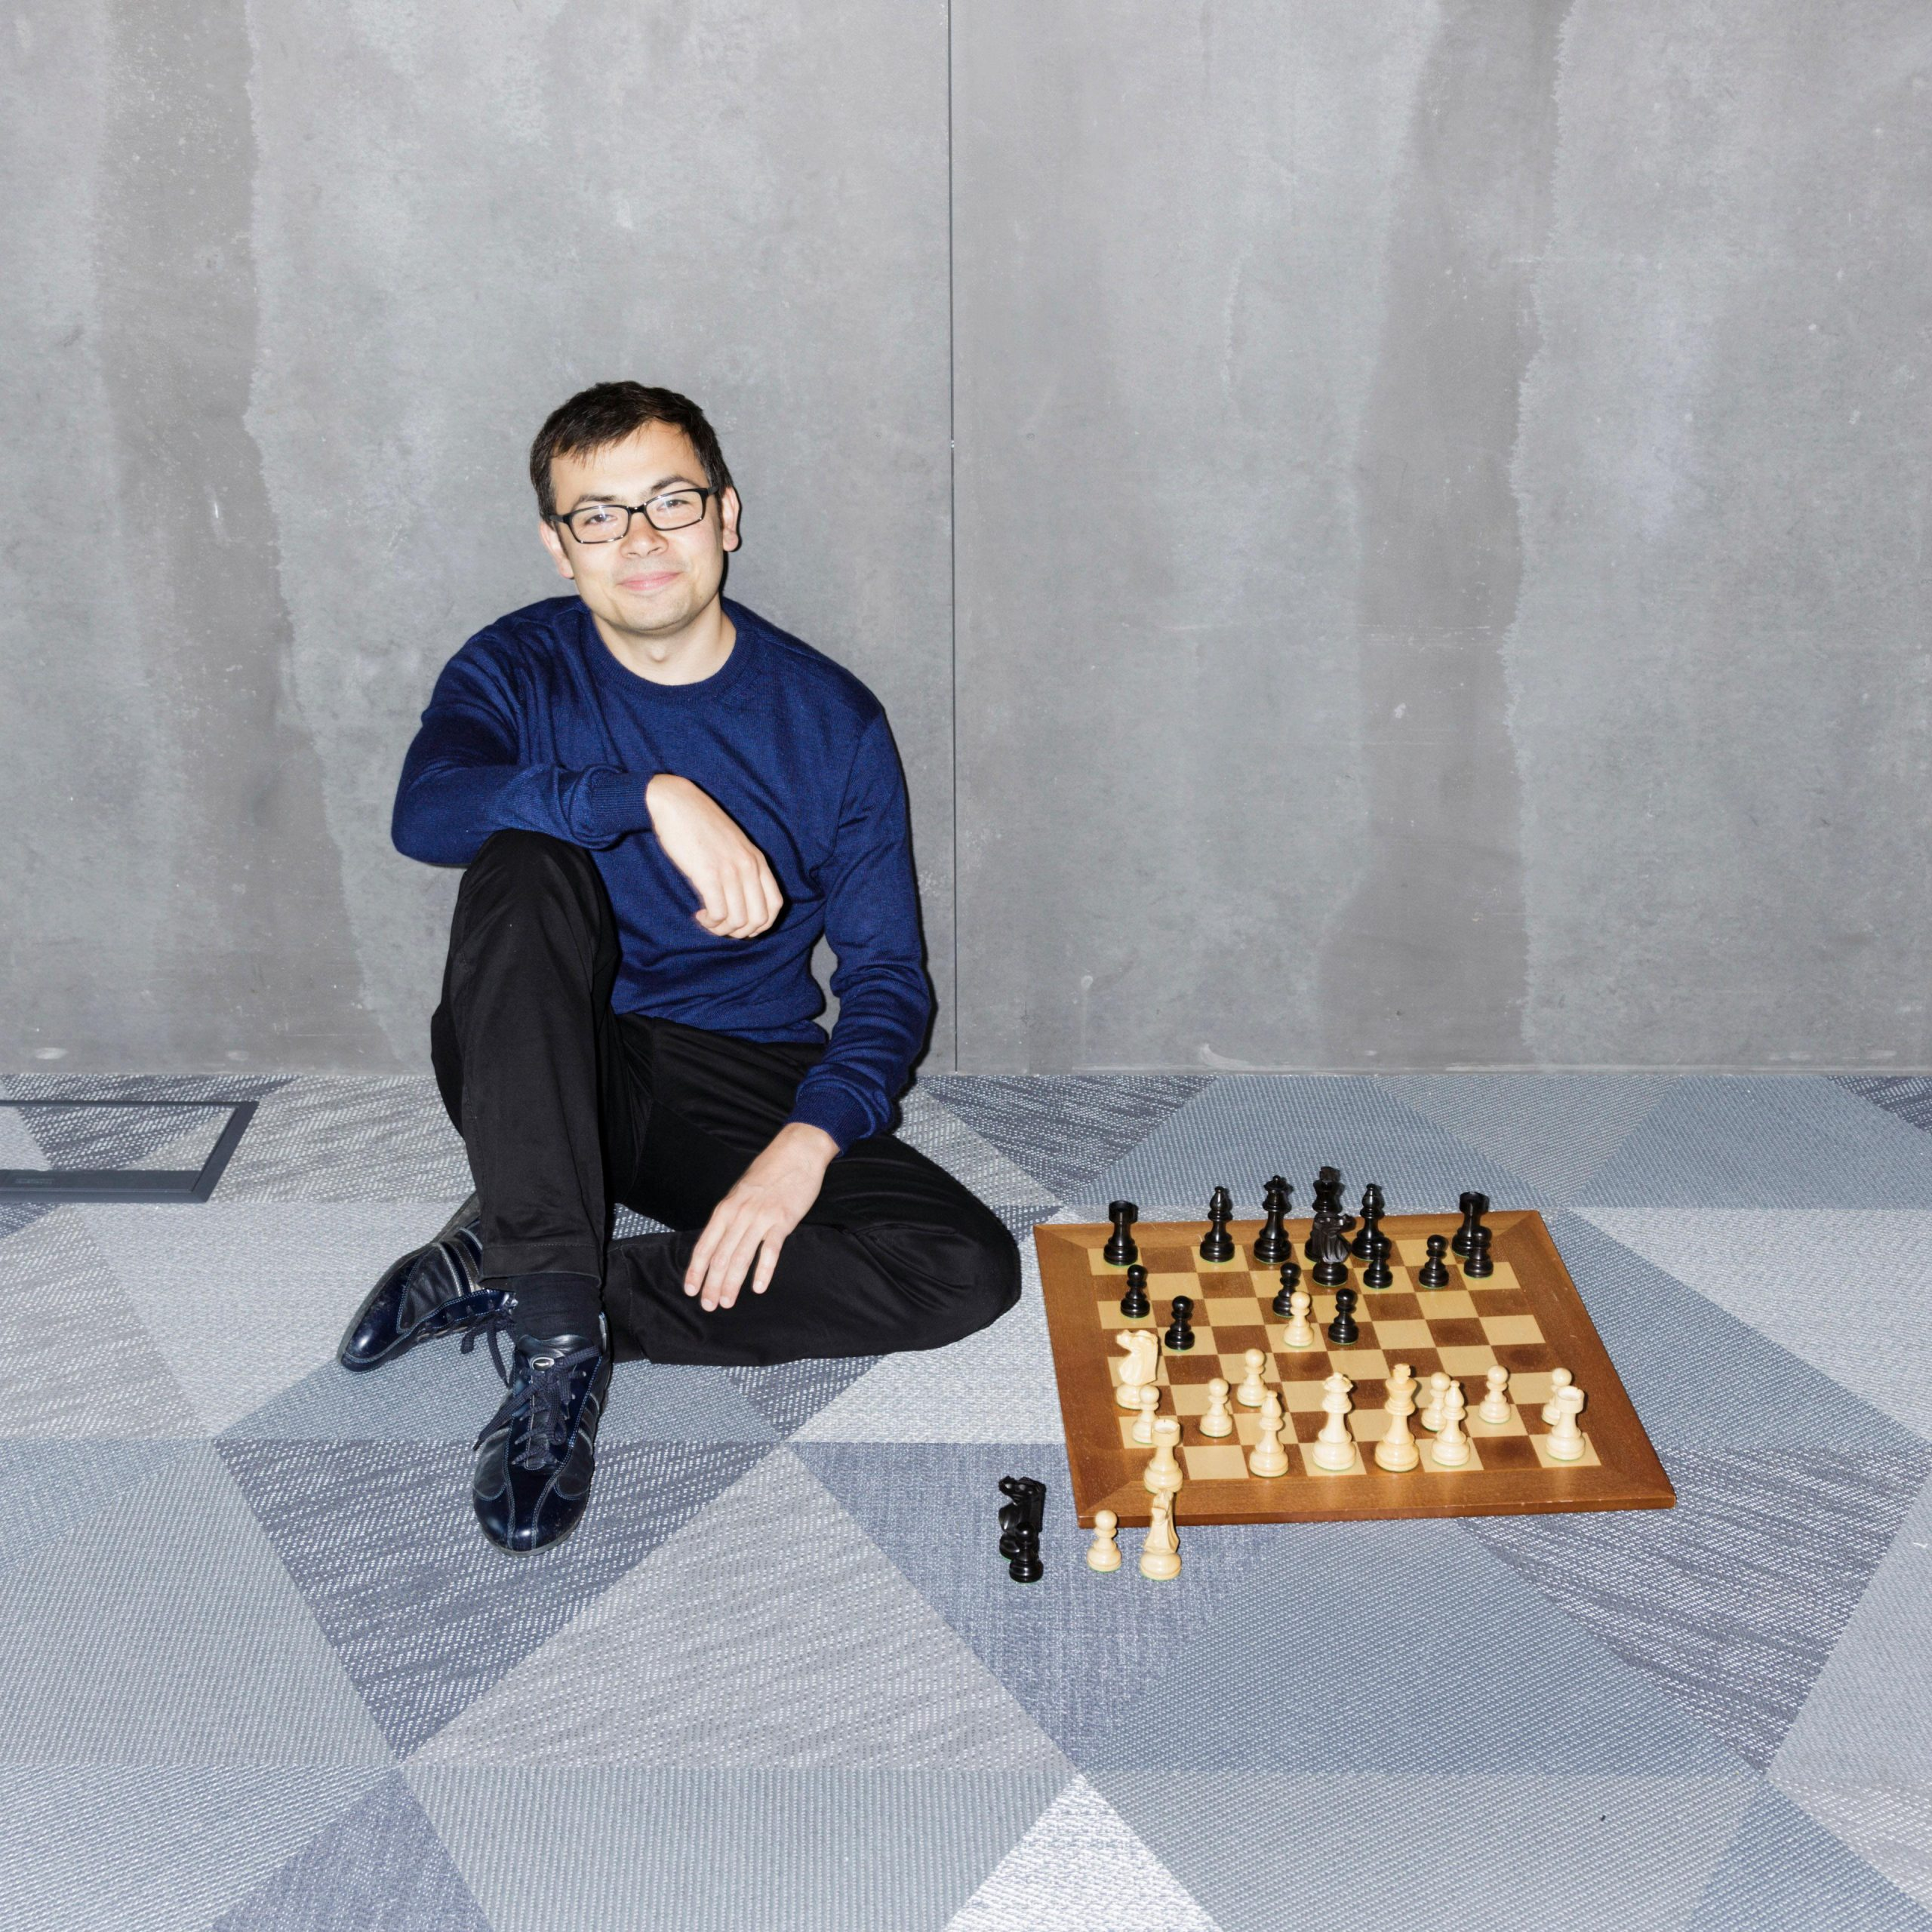 Demis Hassabis, IMMO KLINK/CONTOUR BY GETTY IMAGES